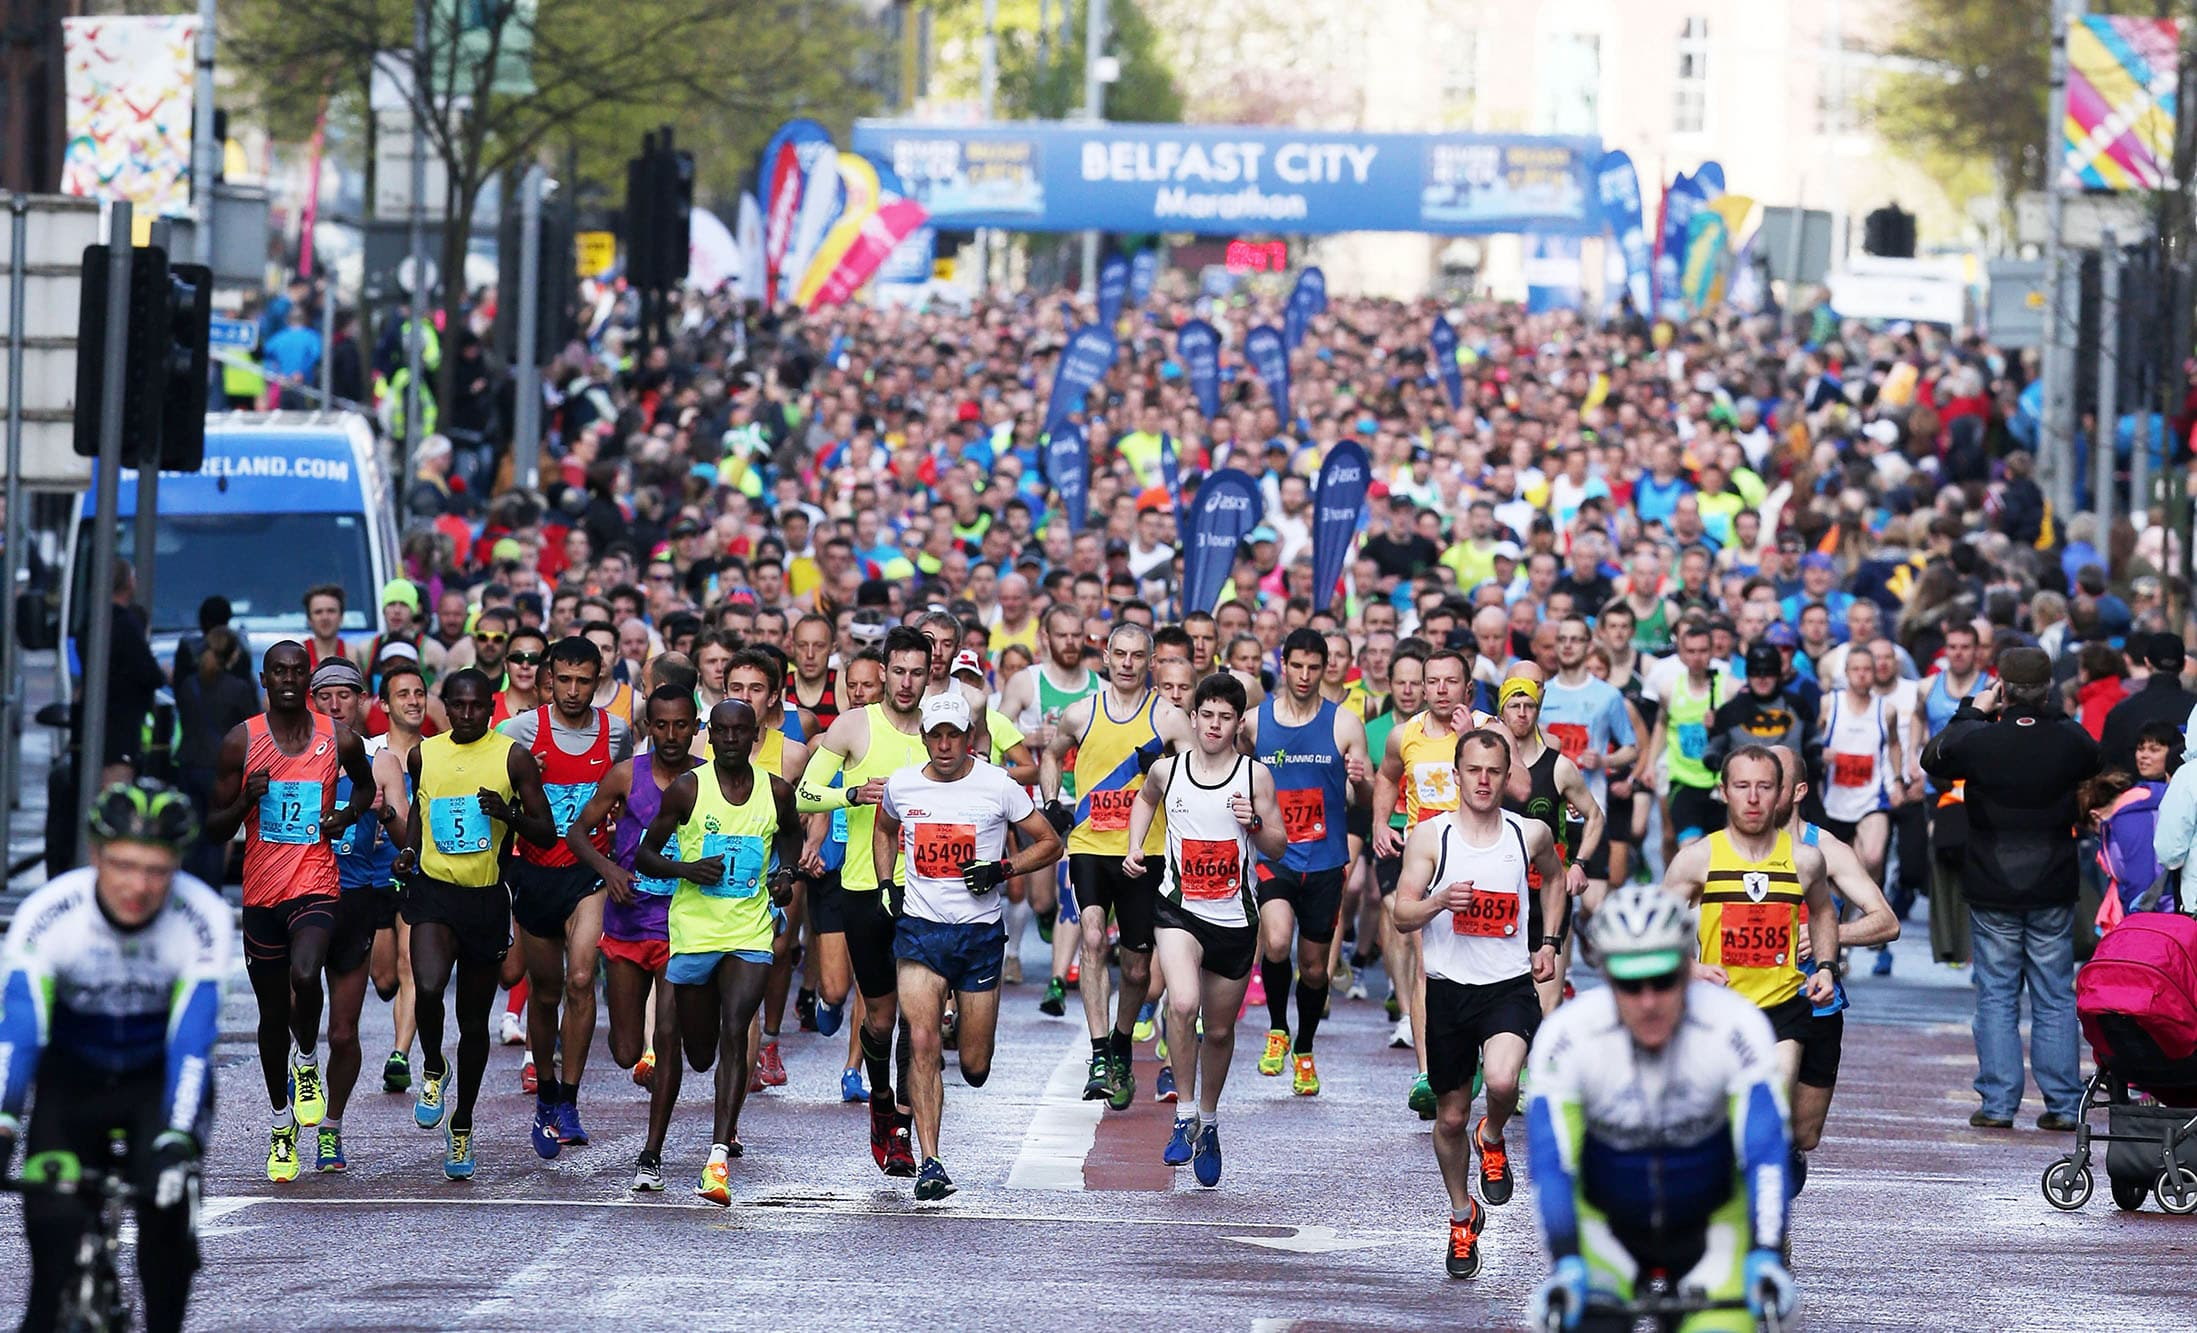 Kipsang Aiming for 4th Belfast City Marathon Victory as 3000 get ready to take on 26.2 miles